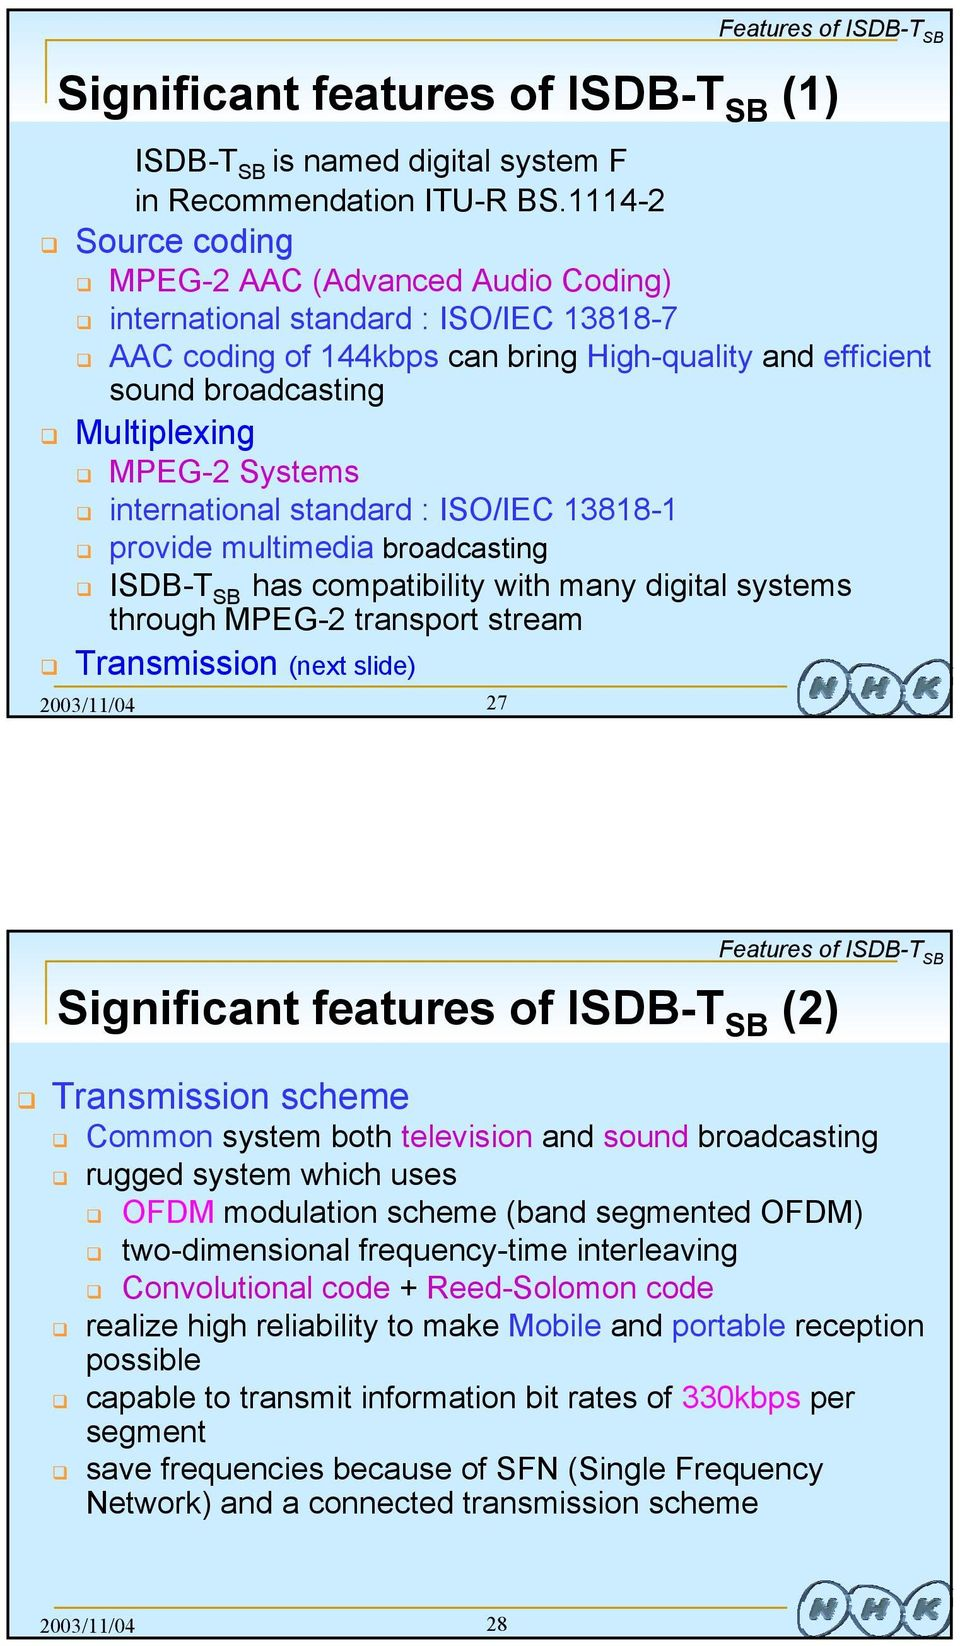 Systems international standard : ISO/IEC 13818-1 provide multimedia broadcasting ISDB-T SB has compatibility with many digital systems through MPEG-2 transport stream Transmission (next slide)